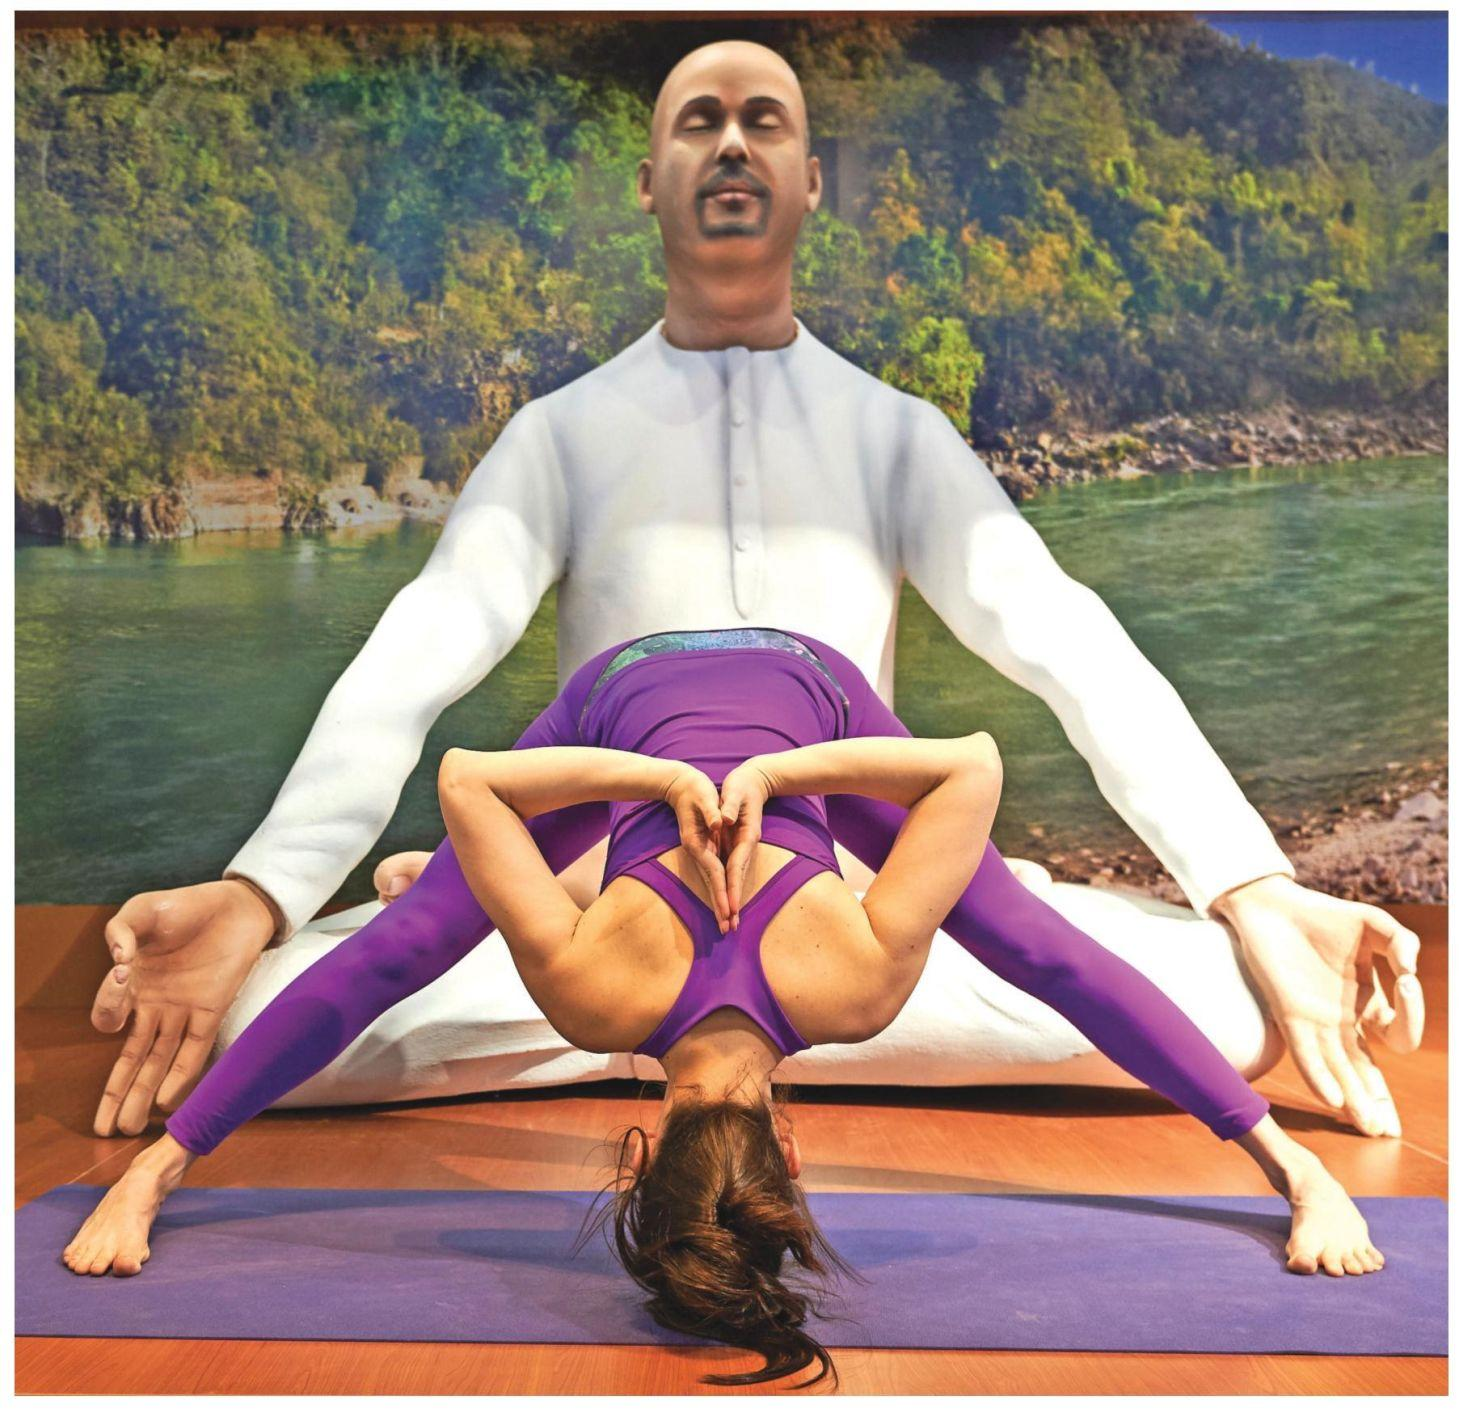 cc1b653f4c68c Why Yoga Pants are Bad for Women | | indiaabroad.com